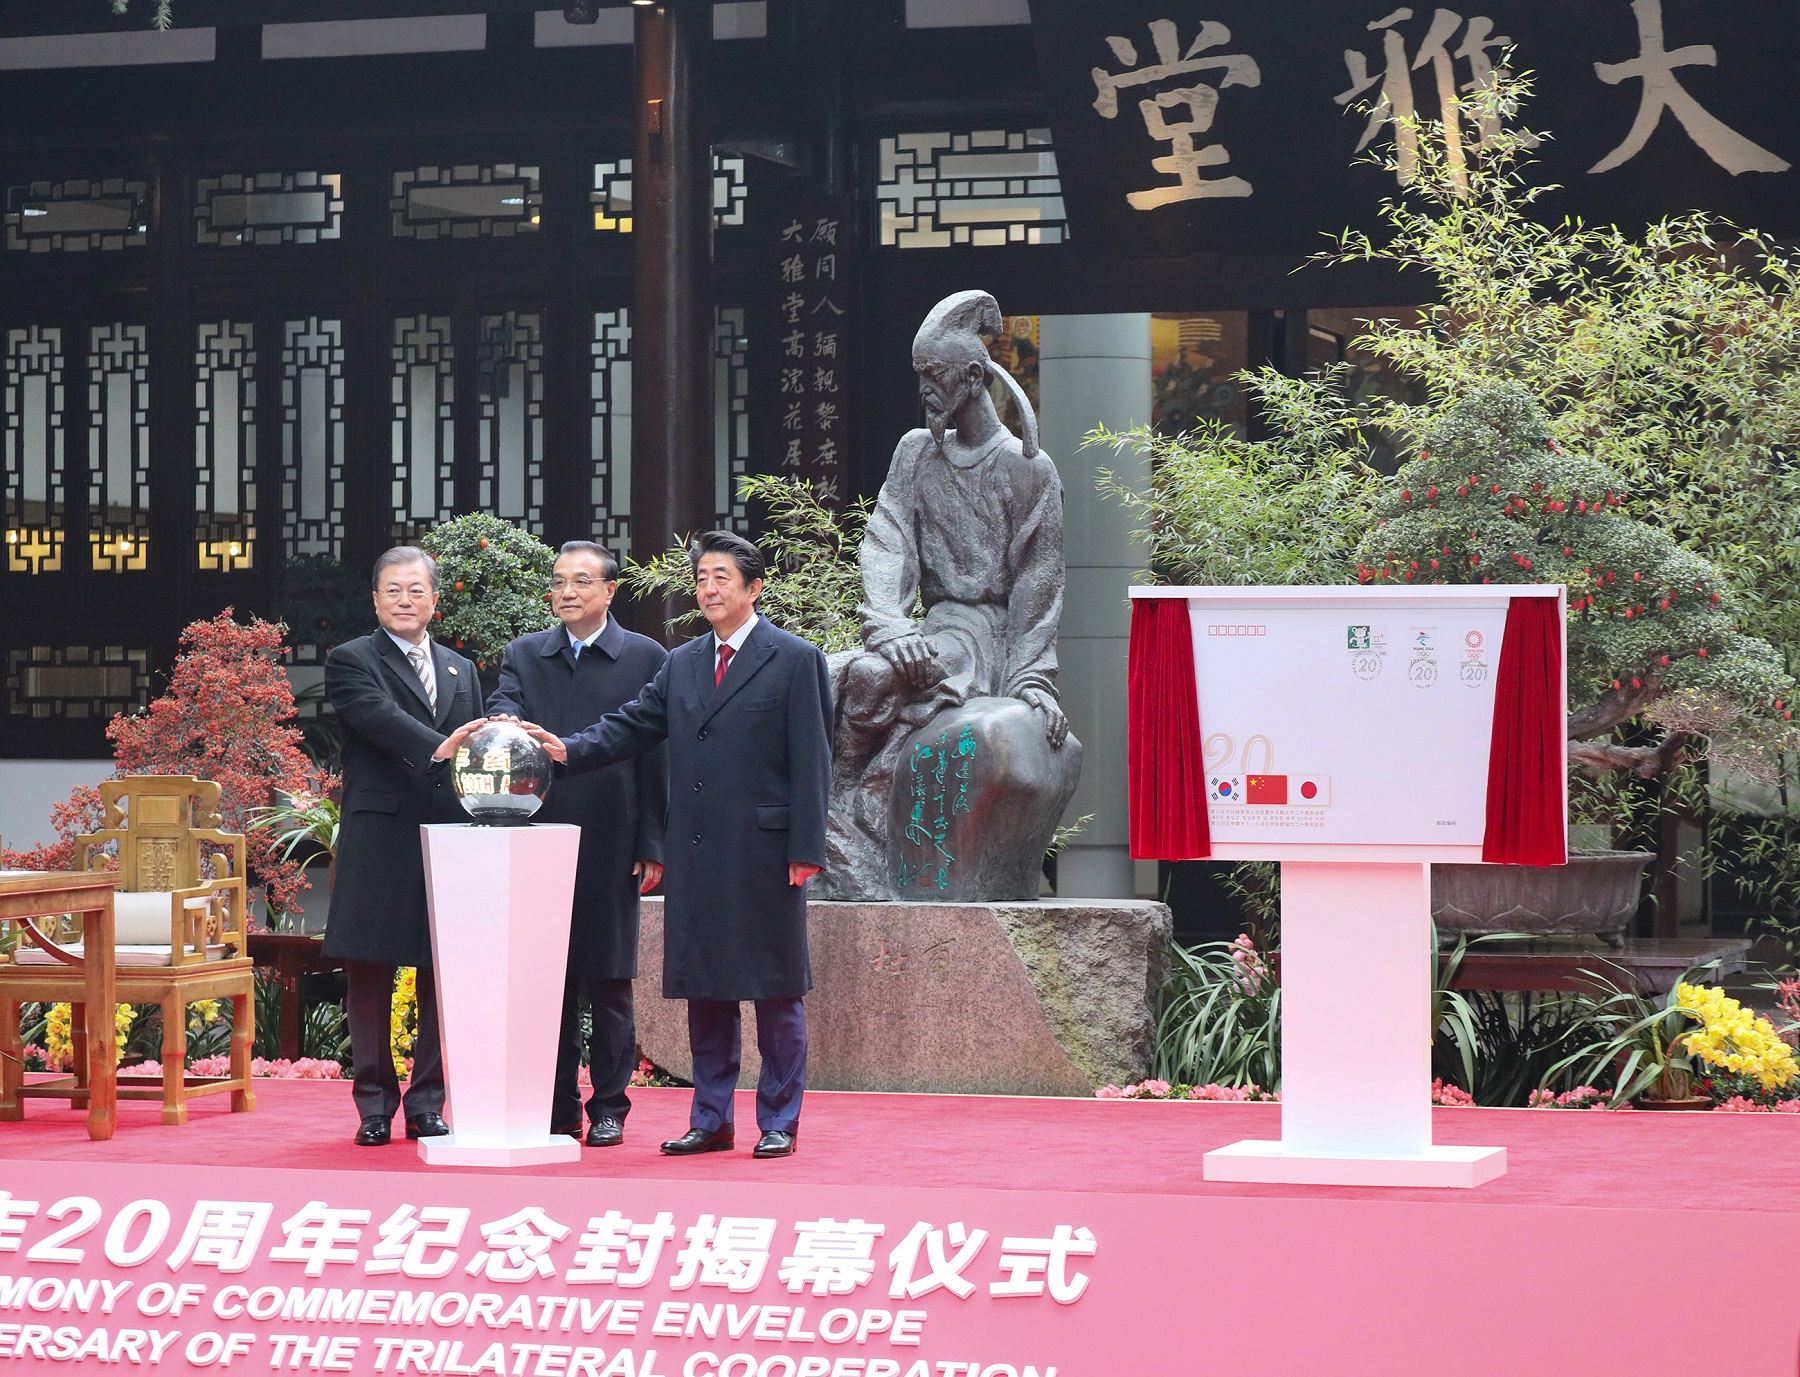 Photograph of the Prime Minister attending the ceremony to commemorate the 20th anniversary of Japan-China-ROK trilateral cooperation (8)